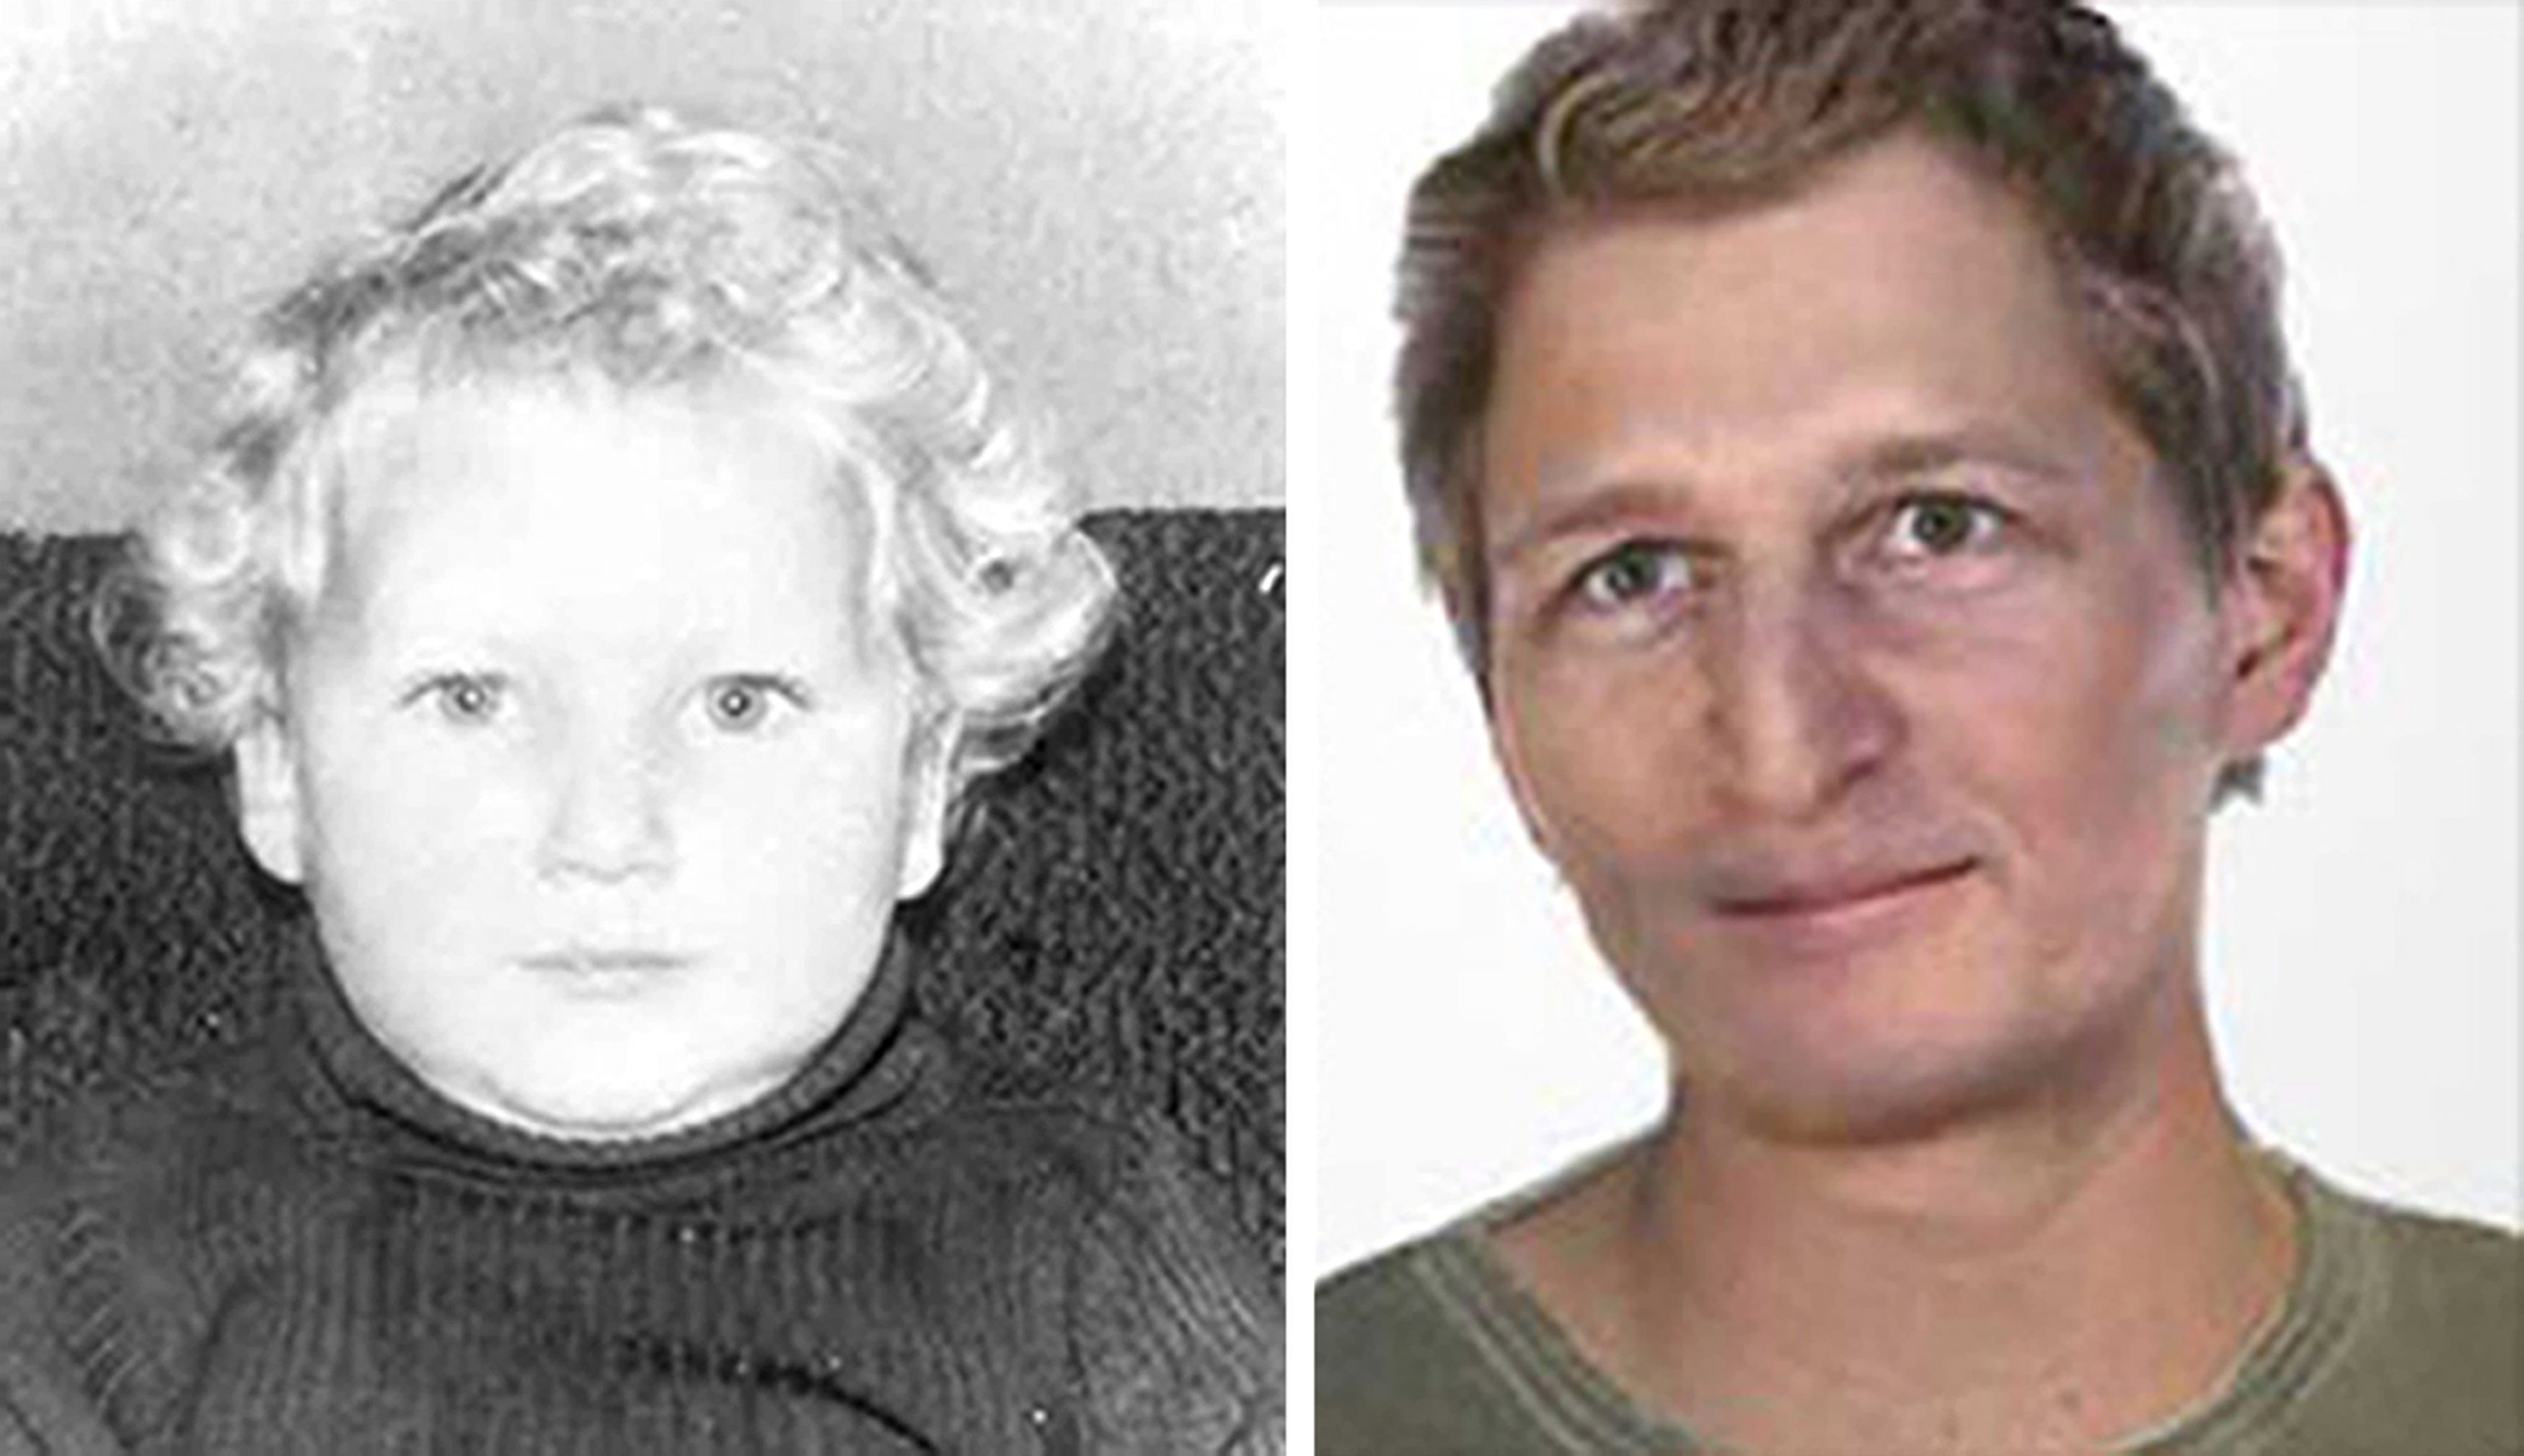 Sandy Davidson went missing in 1976. An 'age-progressed' image has been developed as police renew their appeal for information.